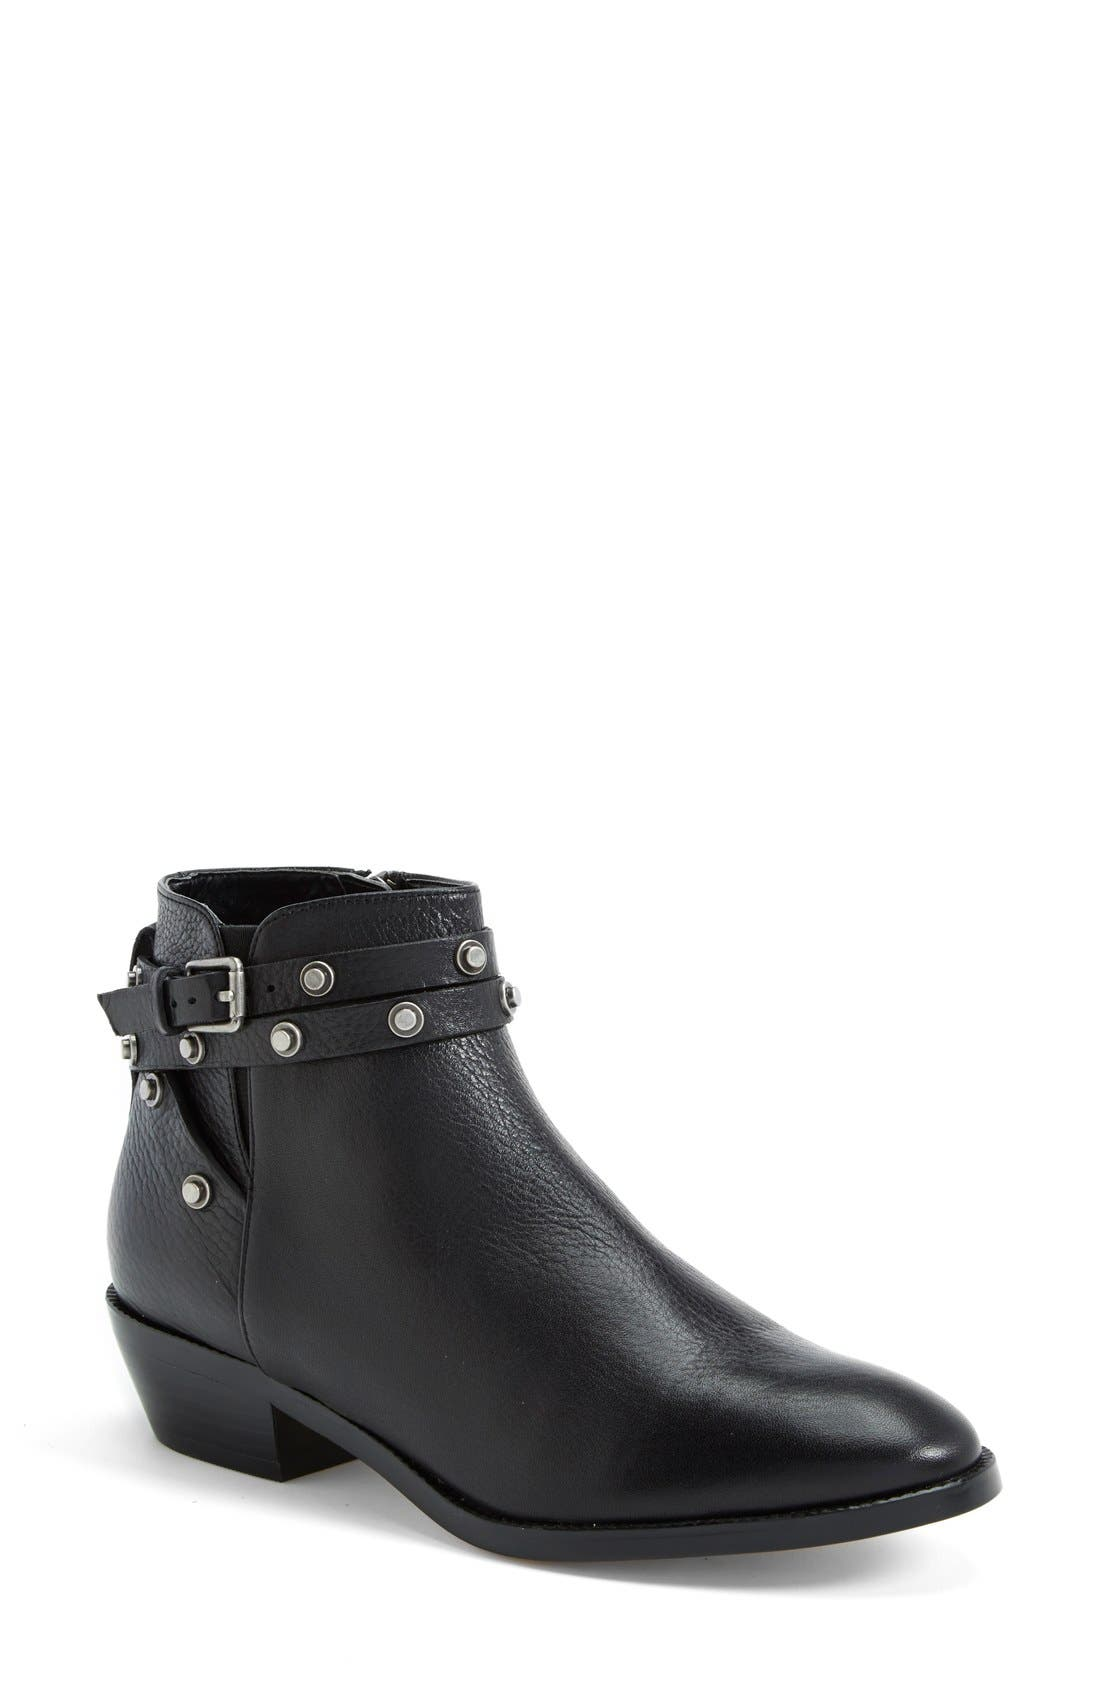 Alternate Image 1 Selected - Halogen 'Lidia' Studded Leather Ankle Bootie (Women)